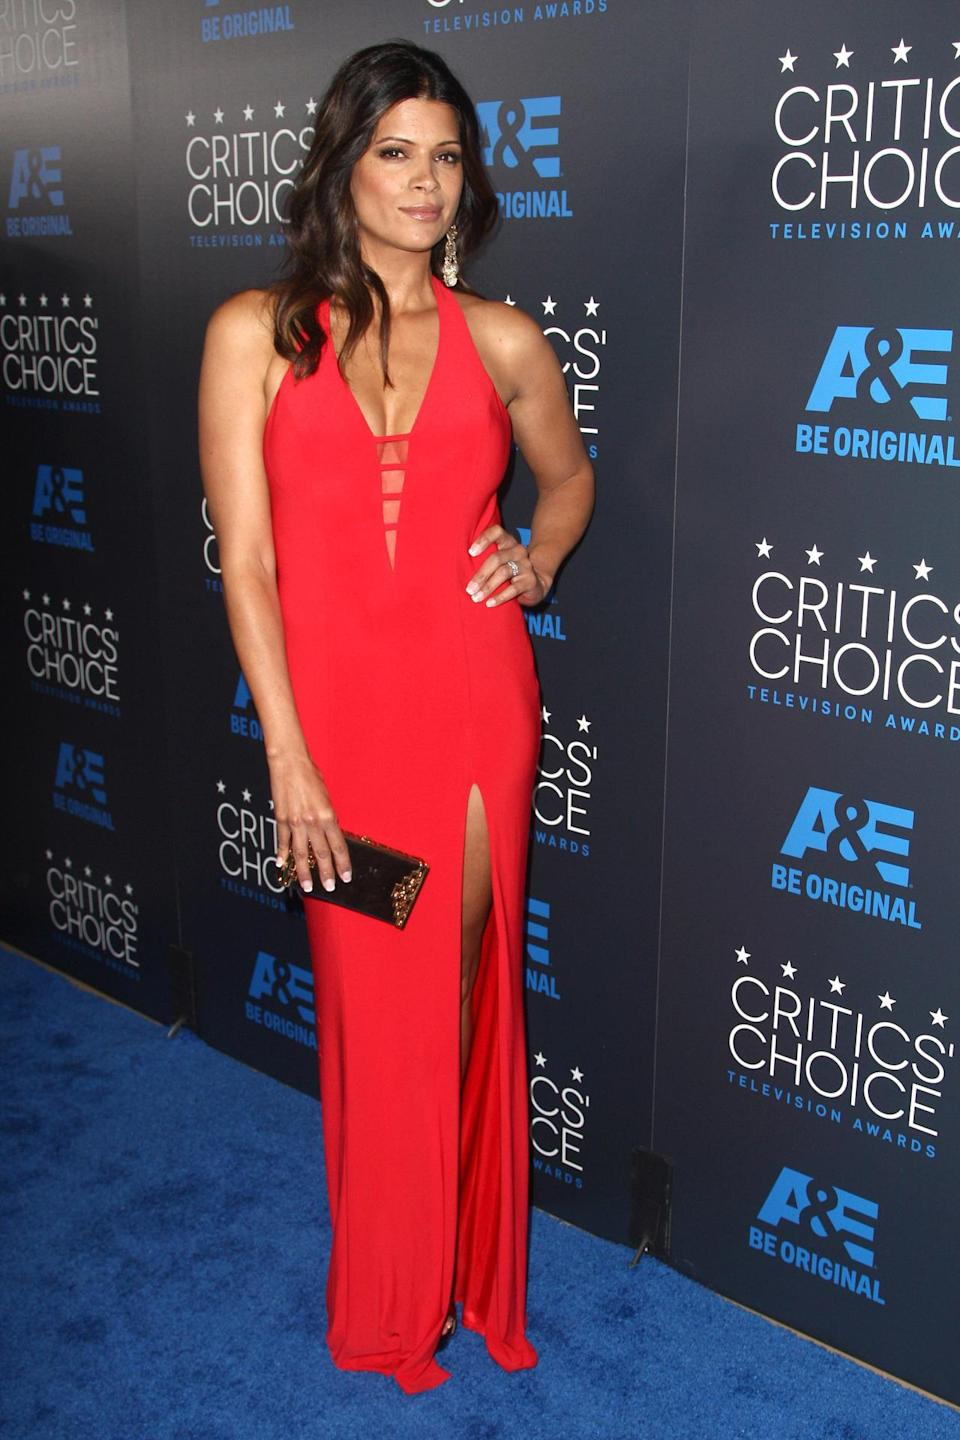 """When I had this to work with it was EASY styling GORJ #JaneTheVirgin star,"" Andrea Navedo's stylist wrote on Twitter of her sexy red look."